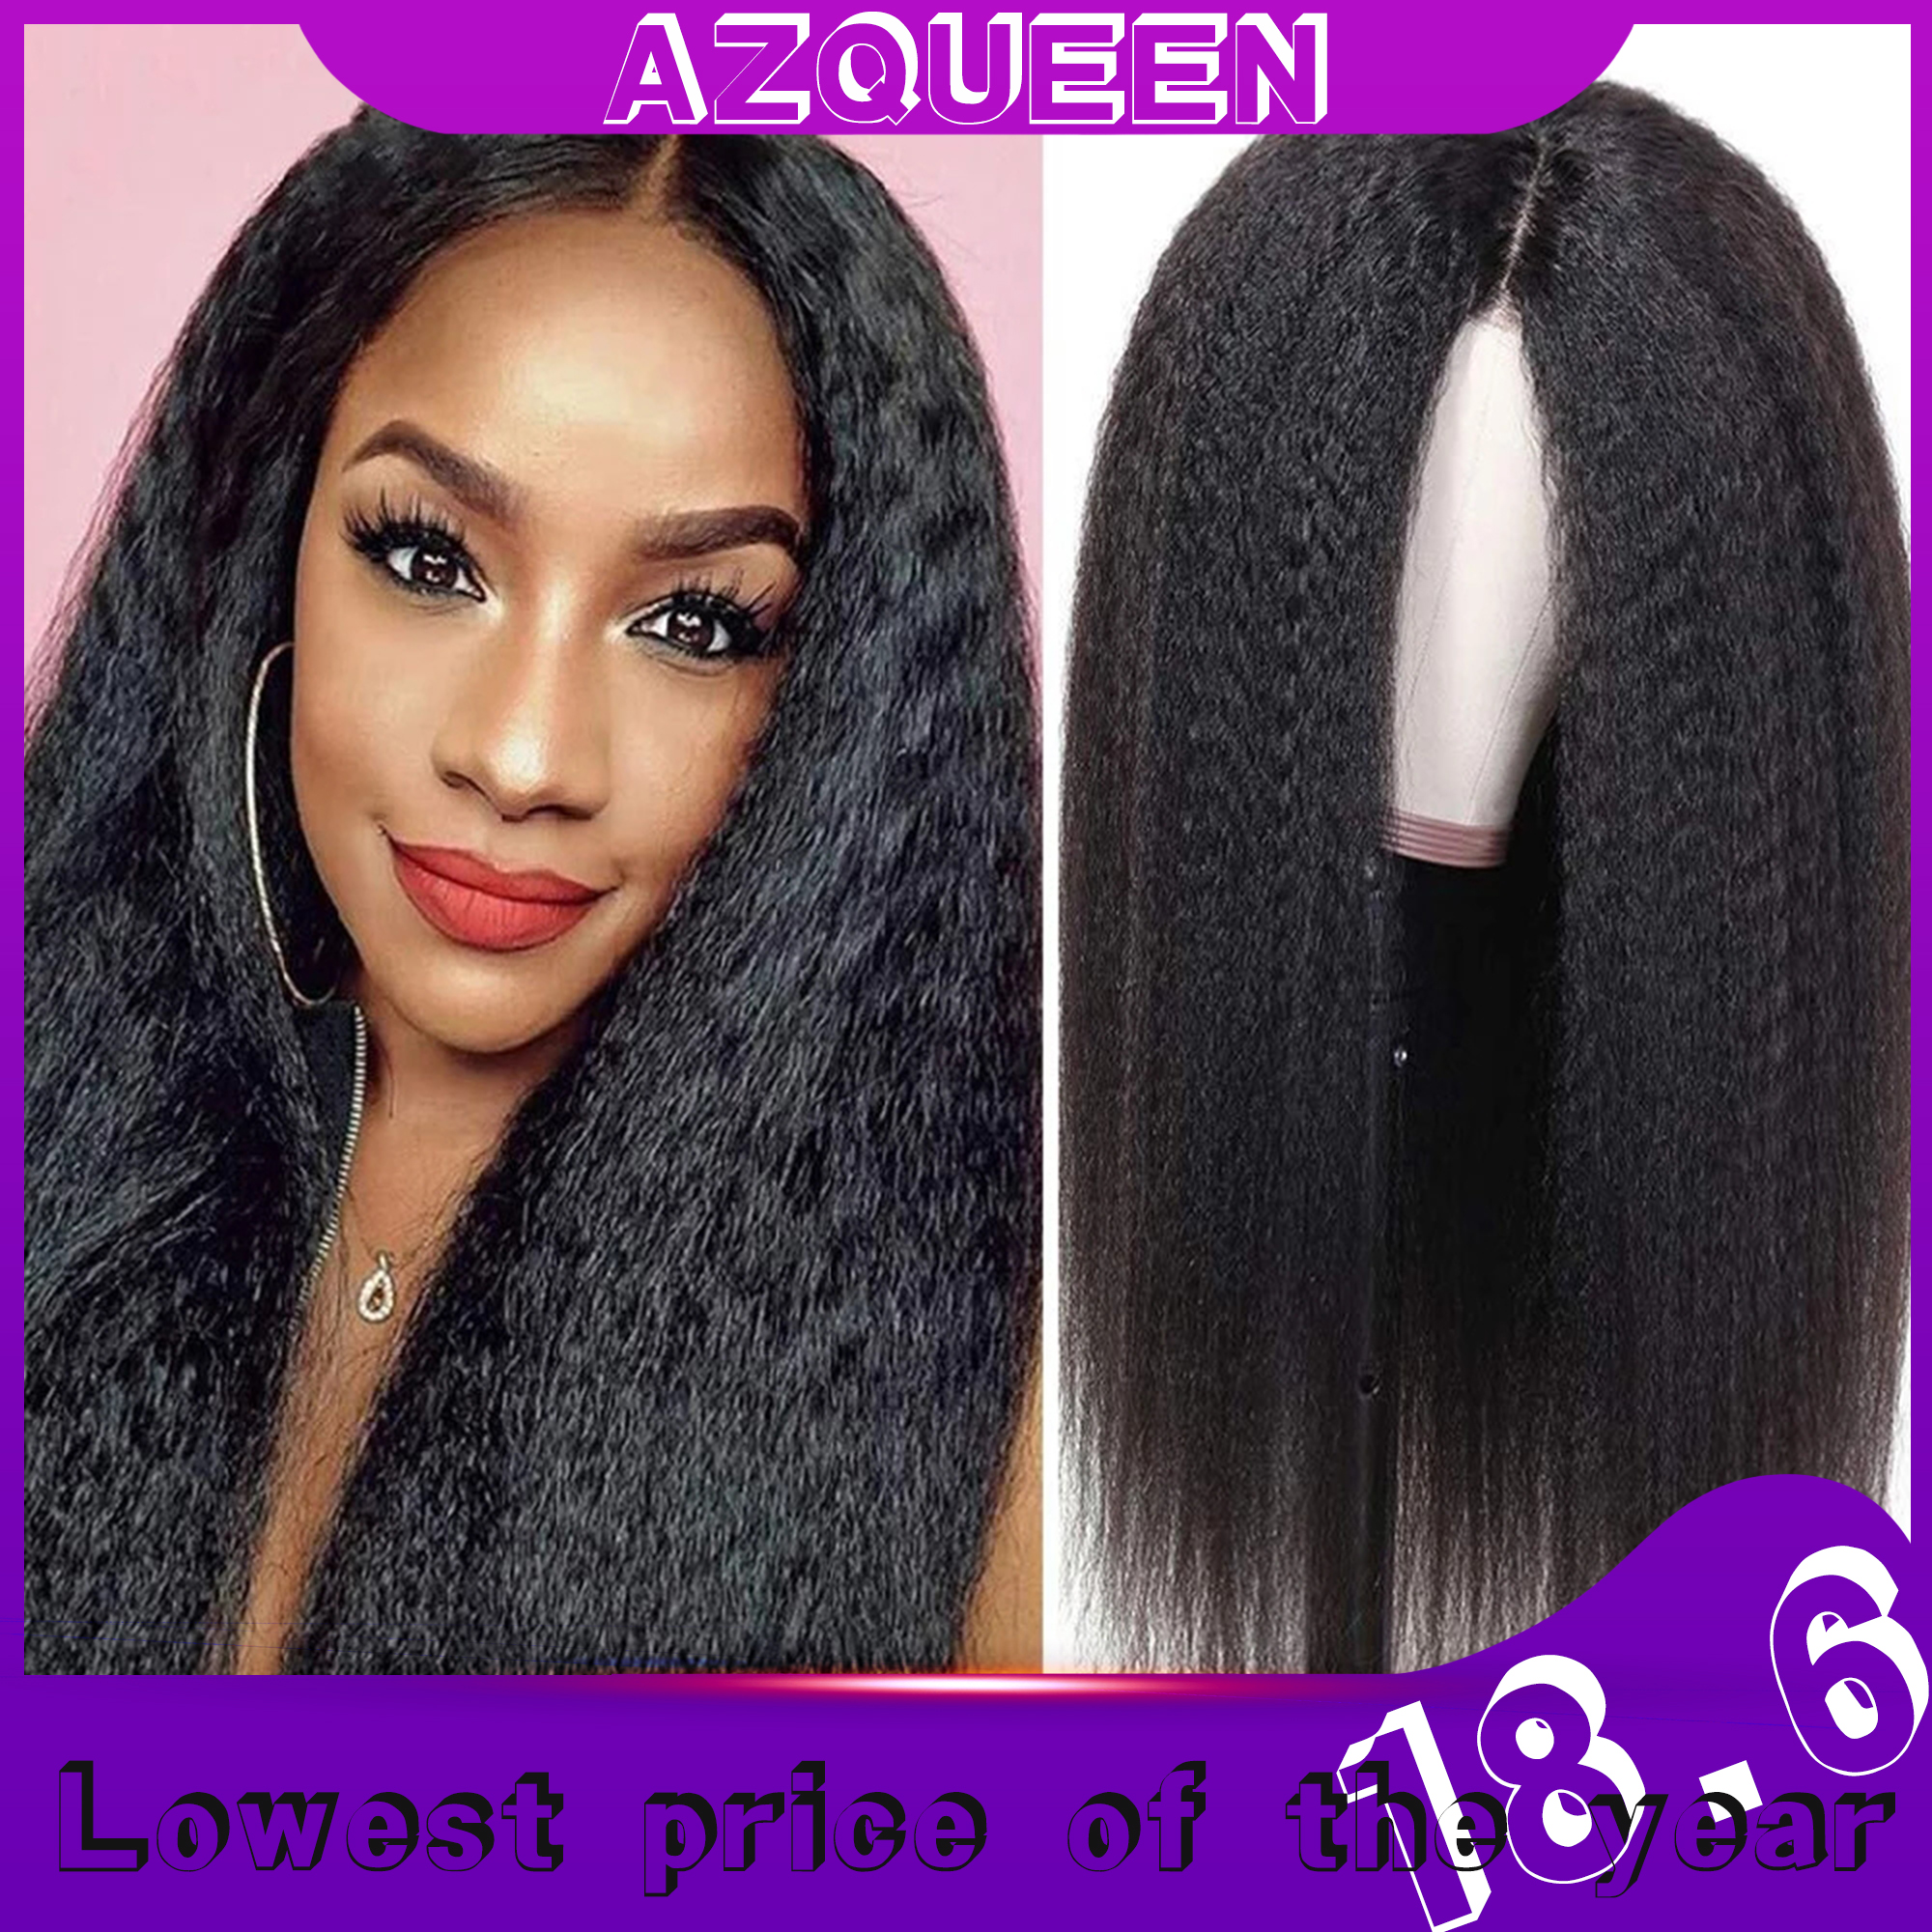 AZqueen Synthetic Wigs Yaki Straight Hair Wig For Women 30inch Long Afro Hair Heat Resistant Fiber African Wig